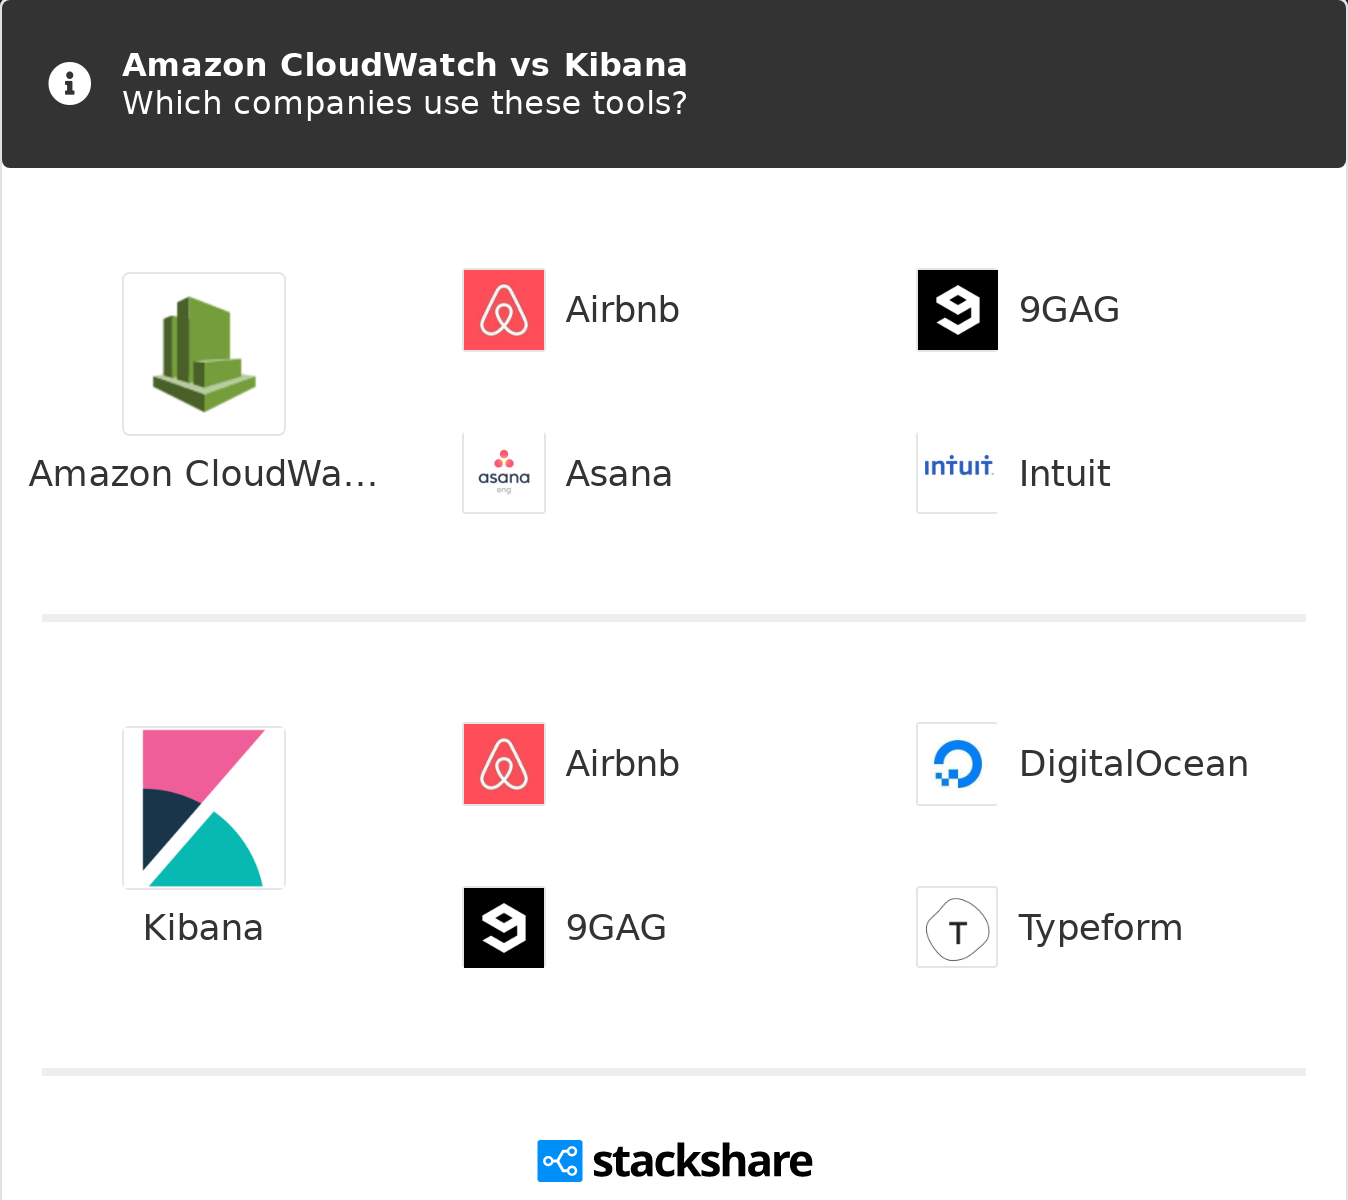 Amazon CloudWatch vs Kibana | What are the differences?